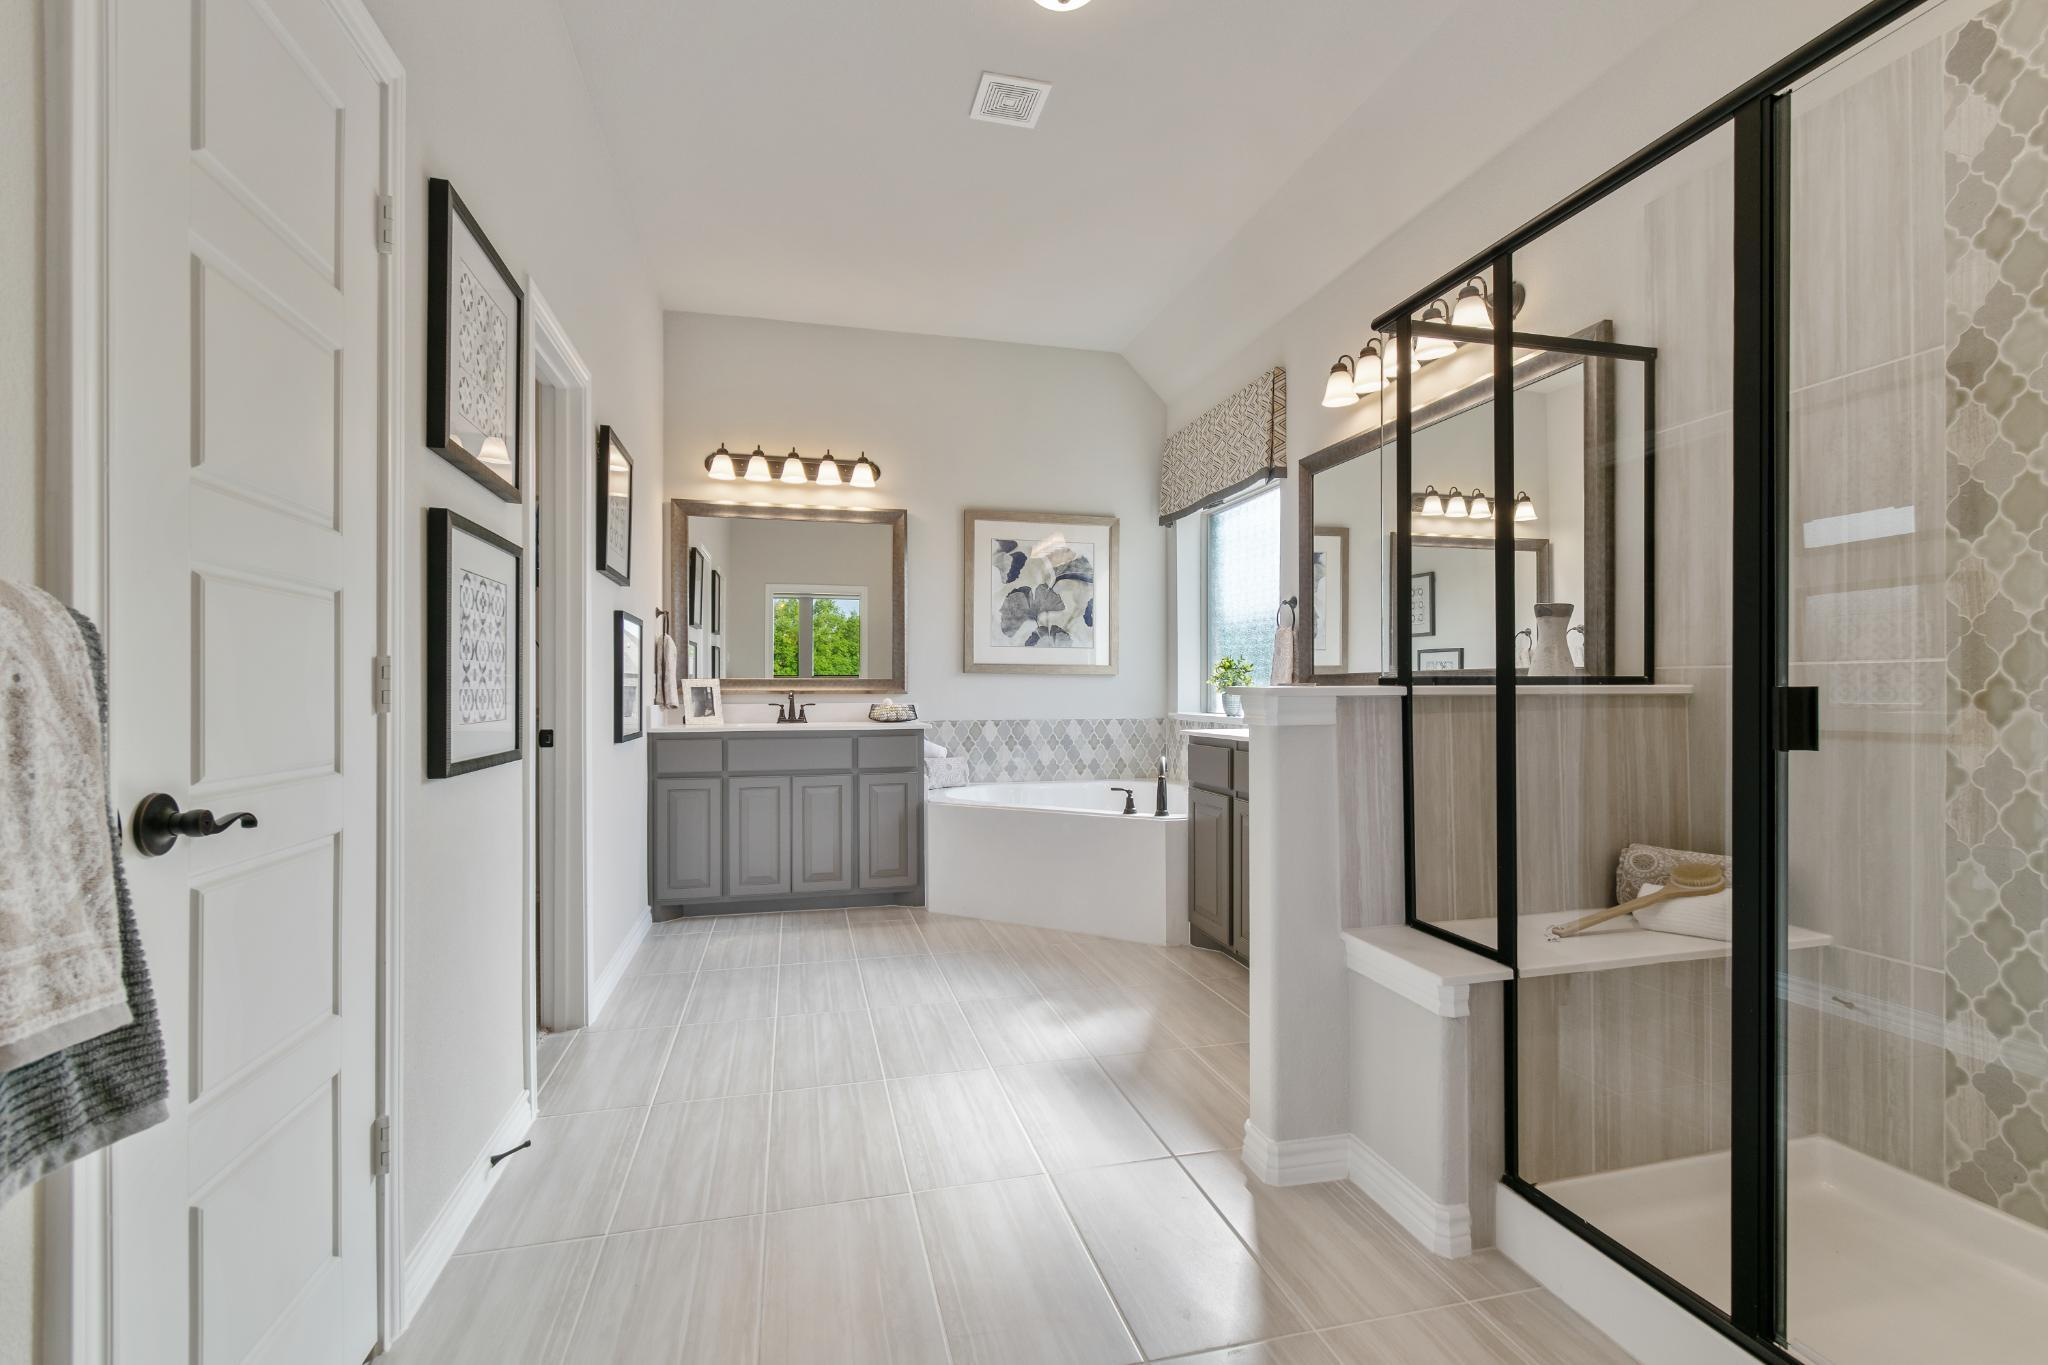 Bathroom featured in the 2434 By Antares Homes in Fort Worth, TX